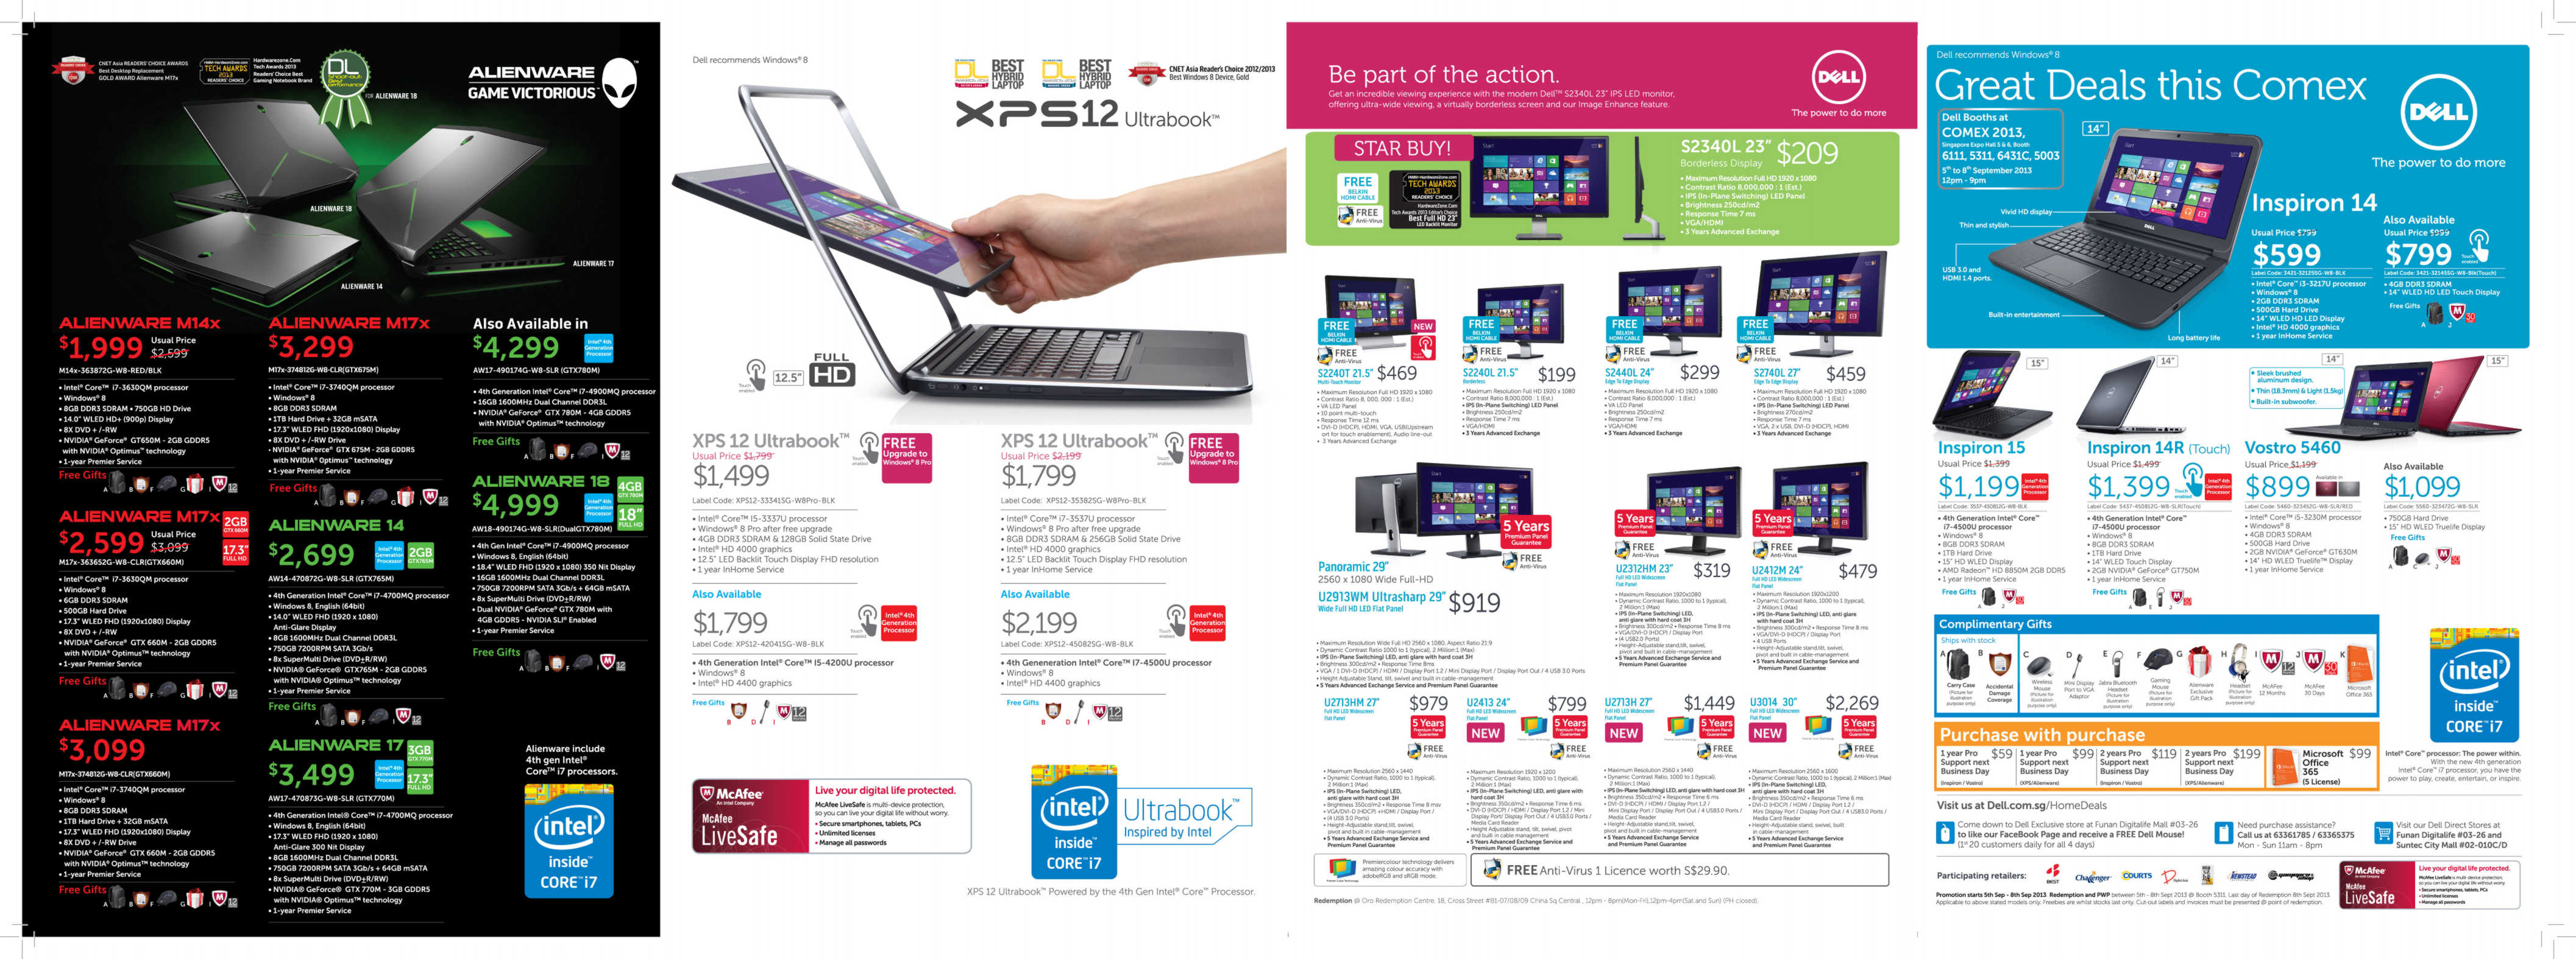 Comex 2013 Flyers - DELL - Page1